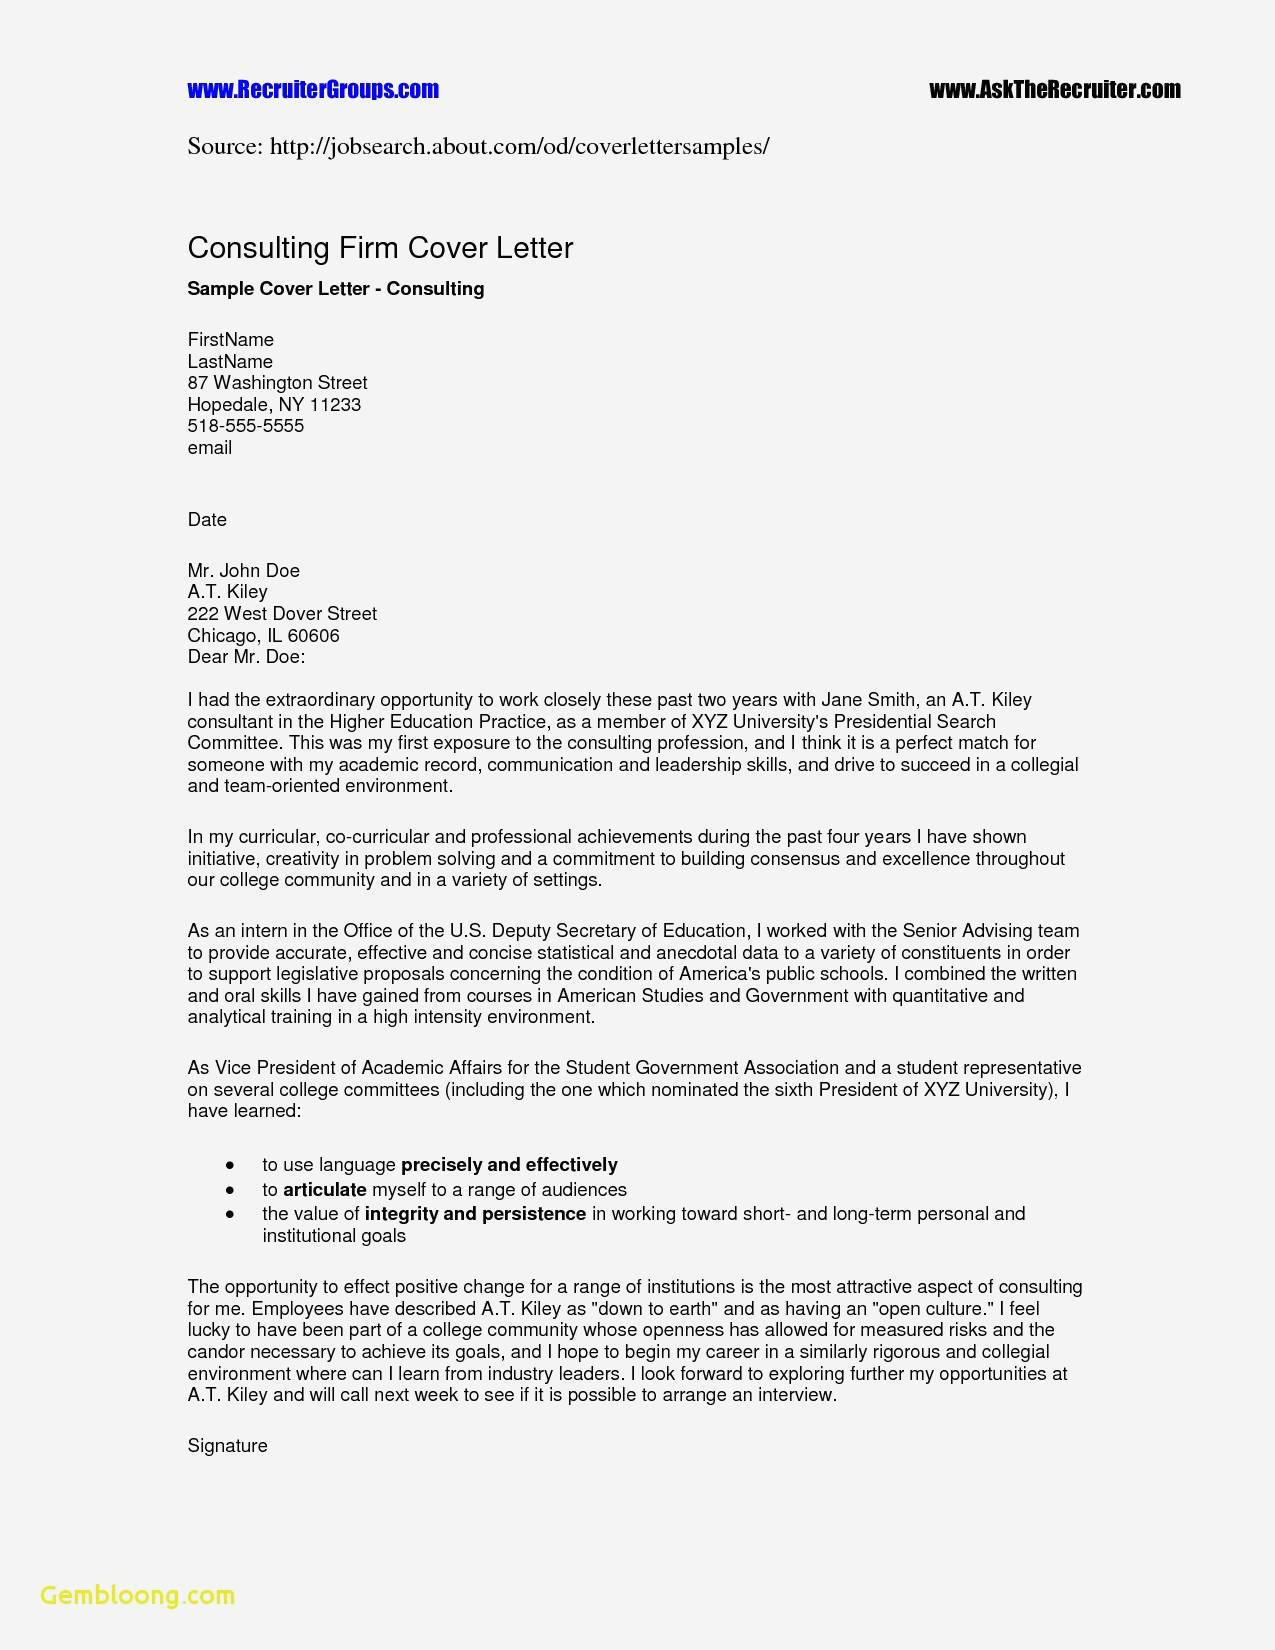 open office resume cover letter template example-Bcg Coverr Choice Image Sample within isolution Me Resume Templates Concept Cv Modele Open fice 19-h